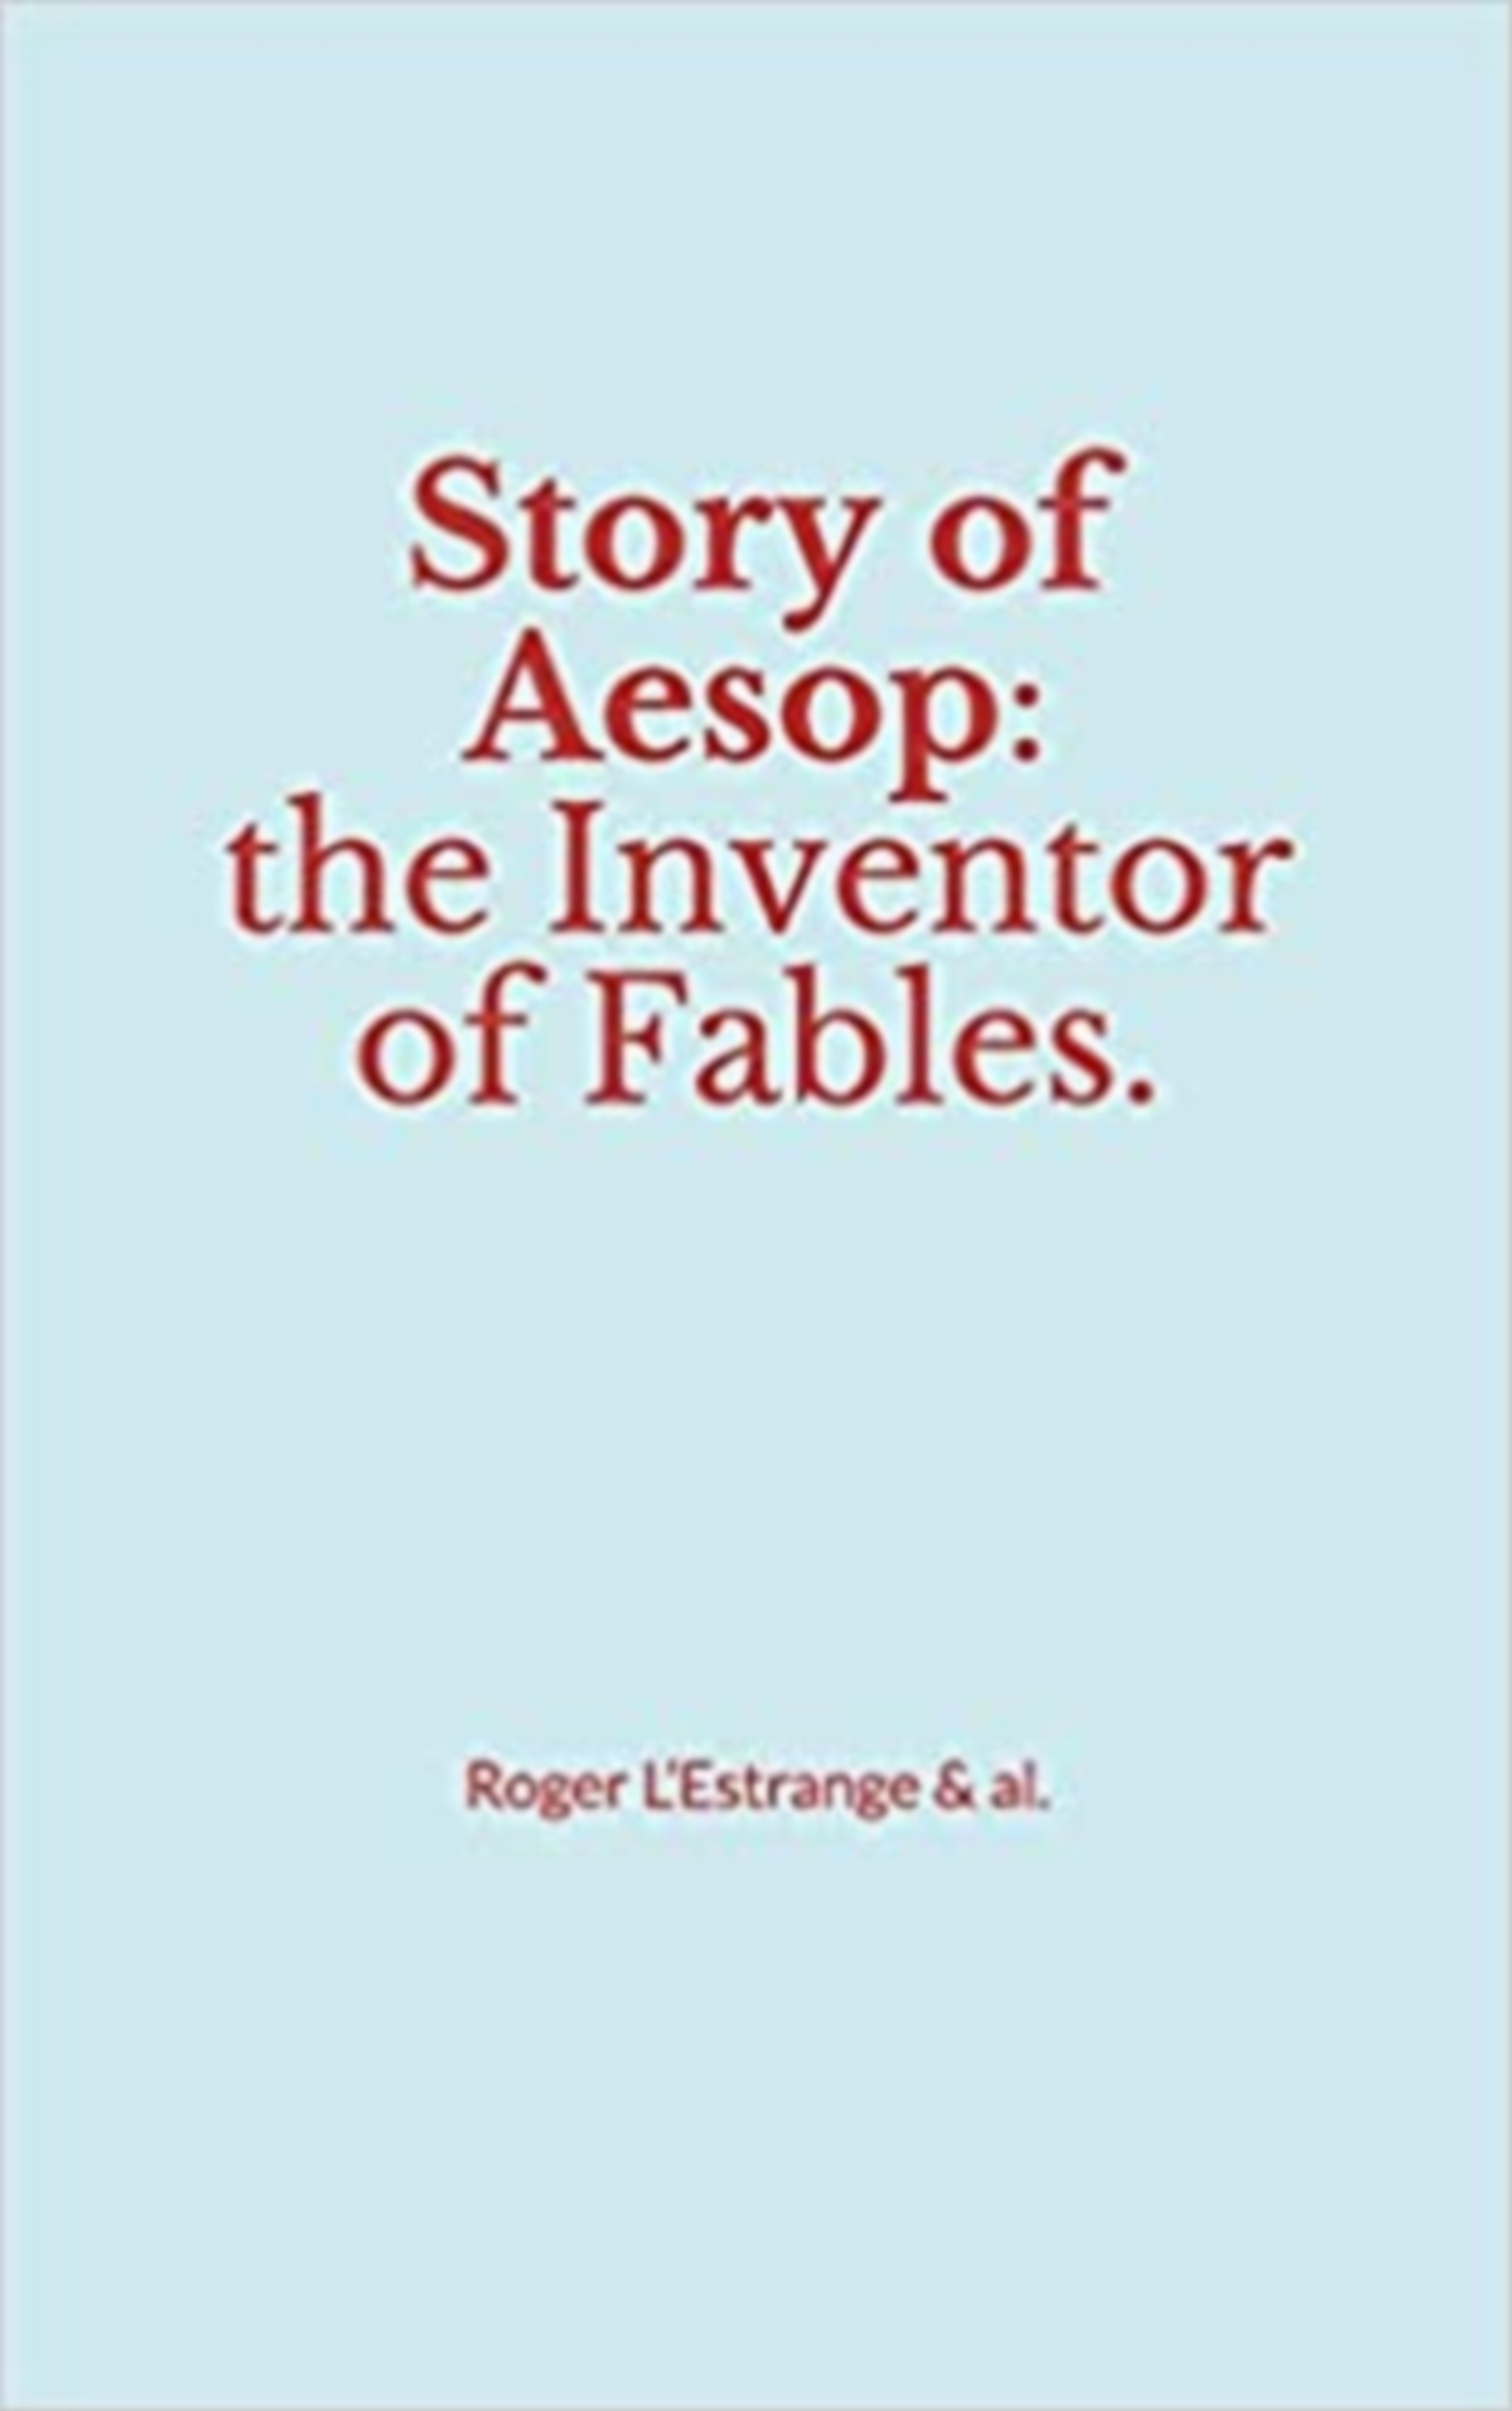 Story of Aesop : the Inventor of Fables